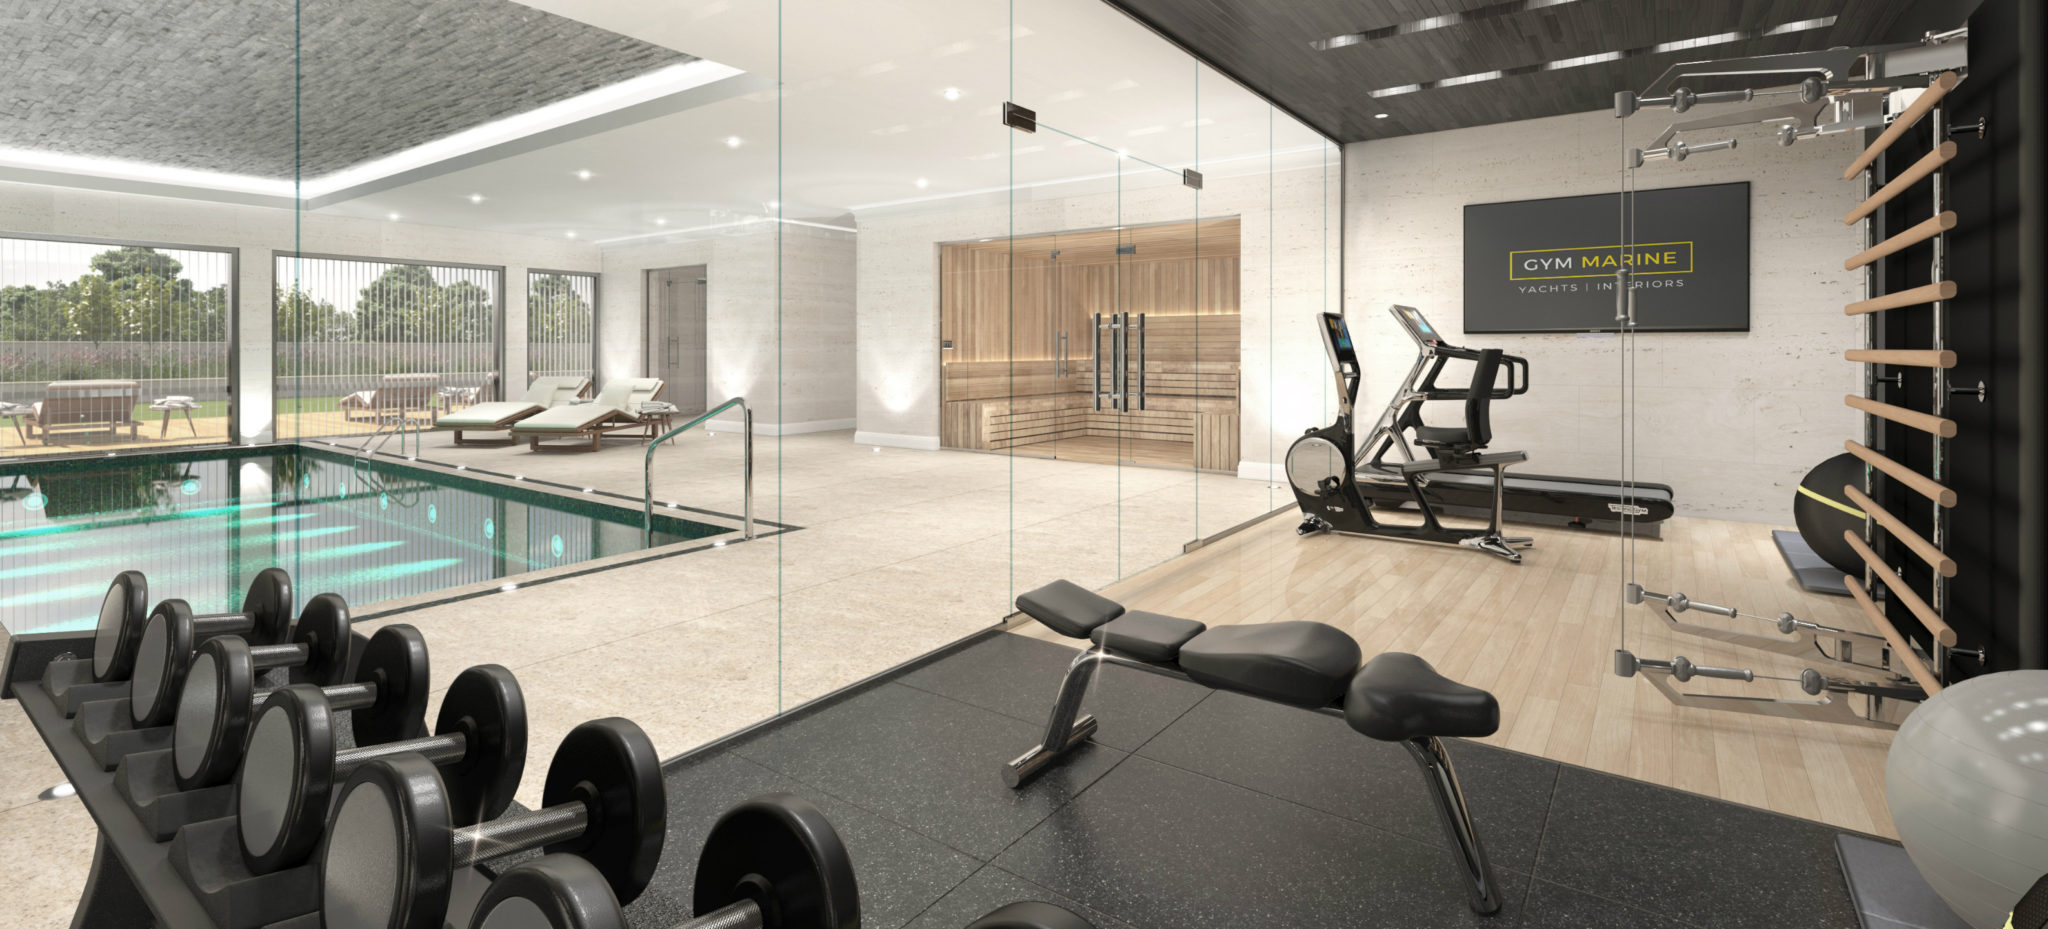 Superyacht gym home design buy equipment